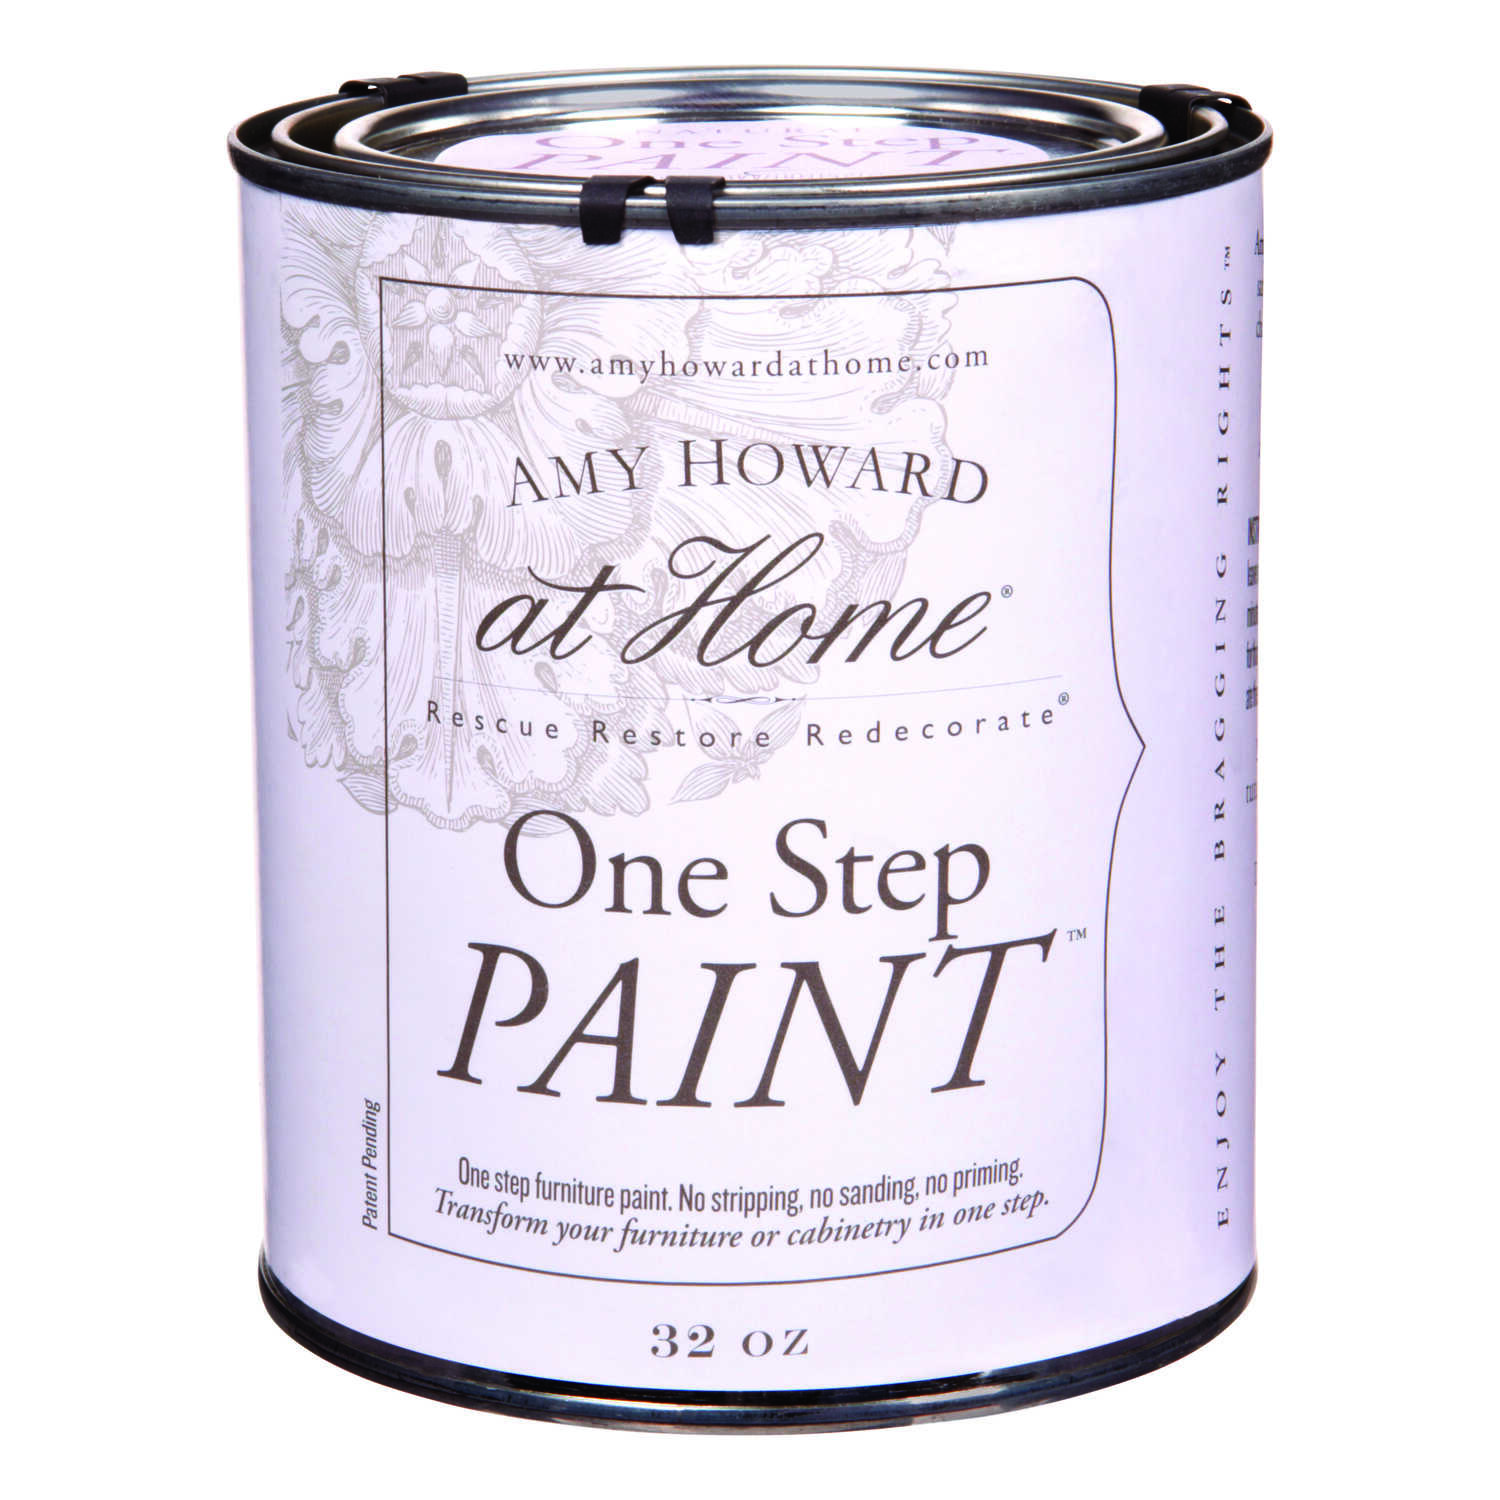 Amy Howard at Home  Palm Beach  Latex  One Step Furniture Paint  32 oz.